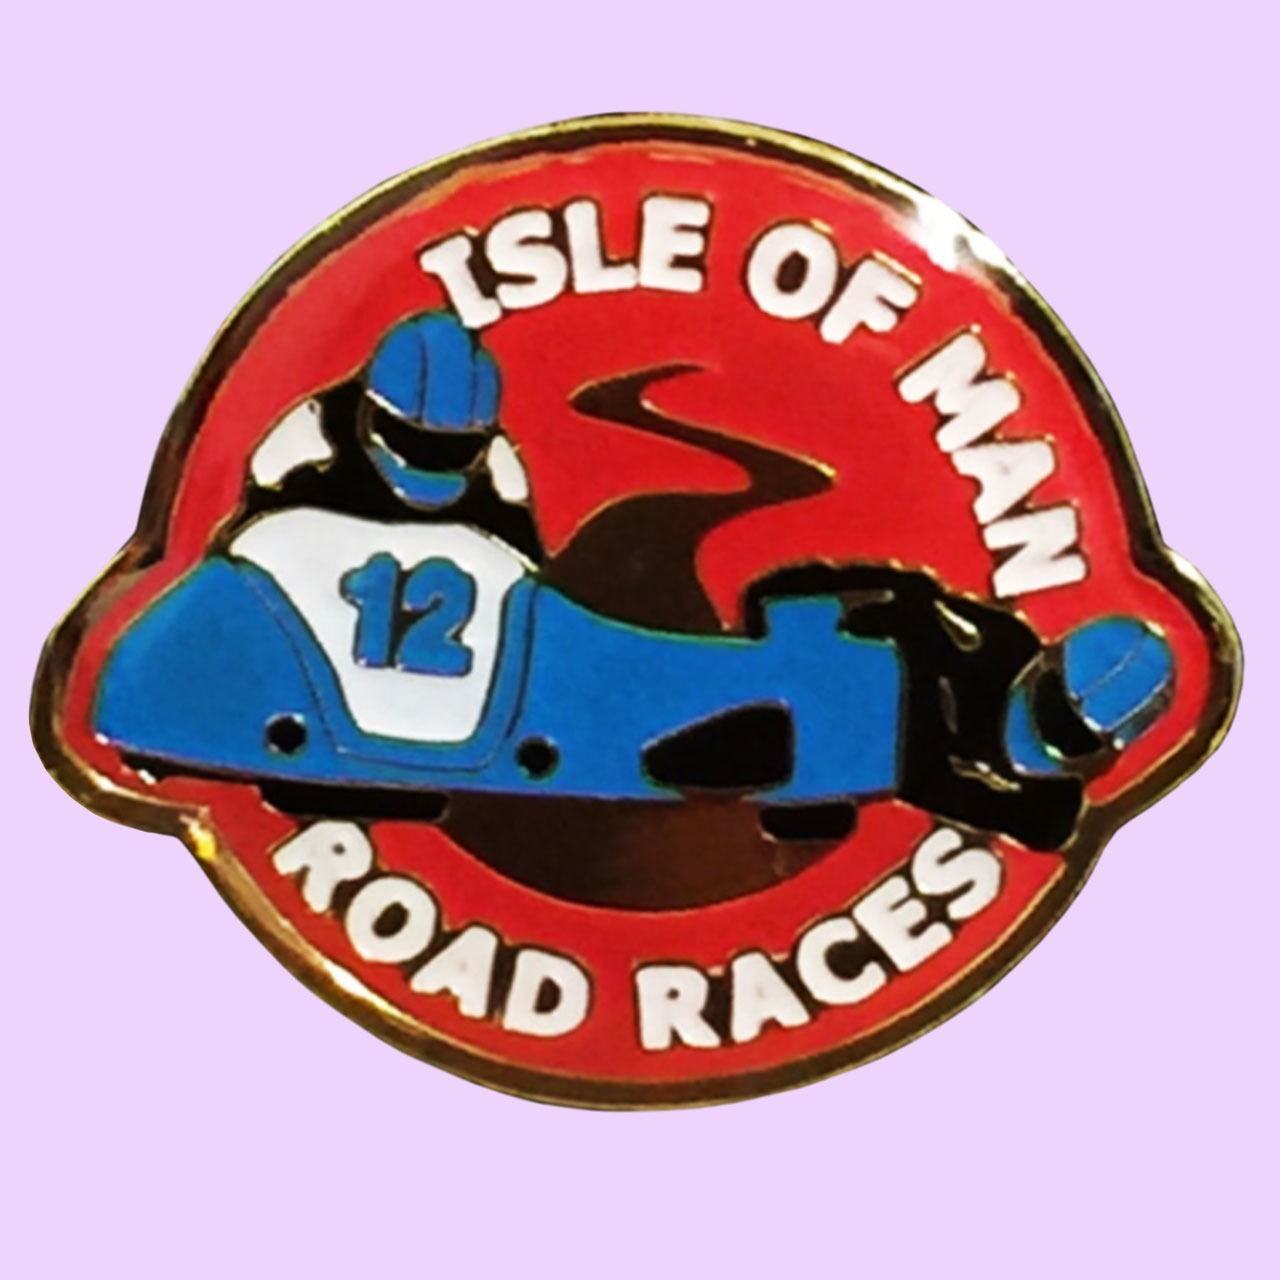 3 Wheeling Official Pin Badge 3 Wheeling Sidecar Racing Official merchandise